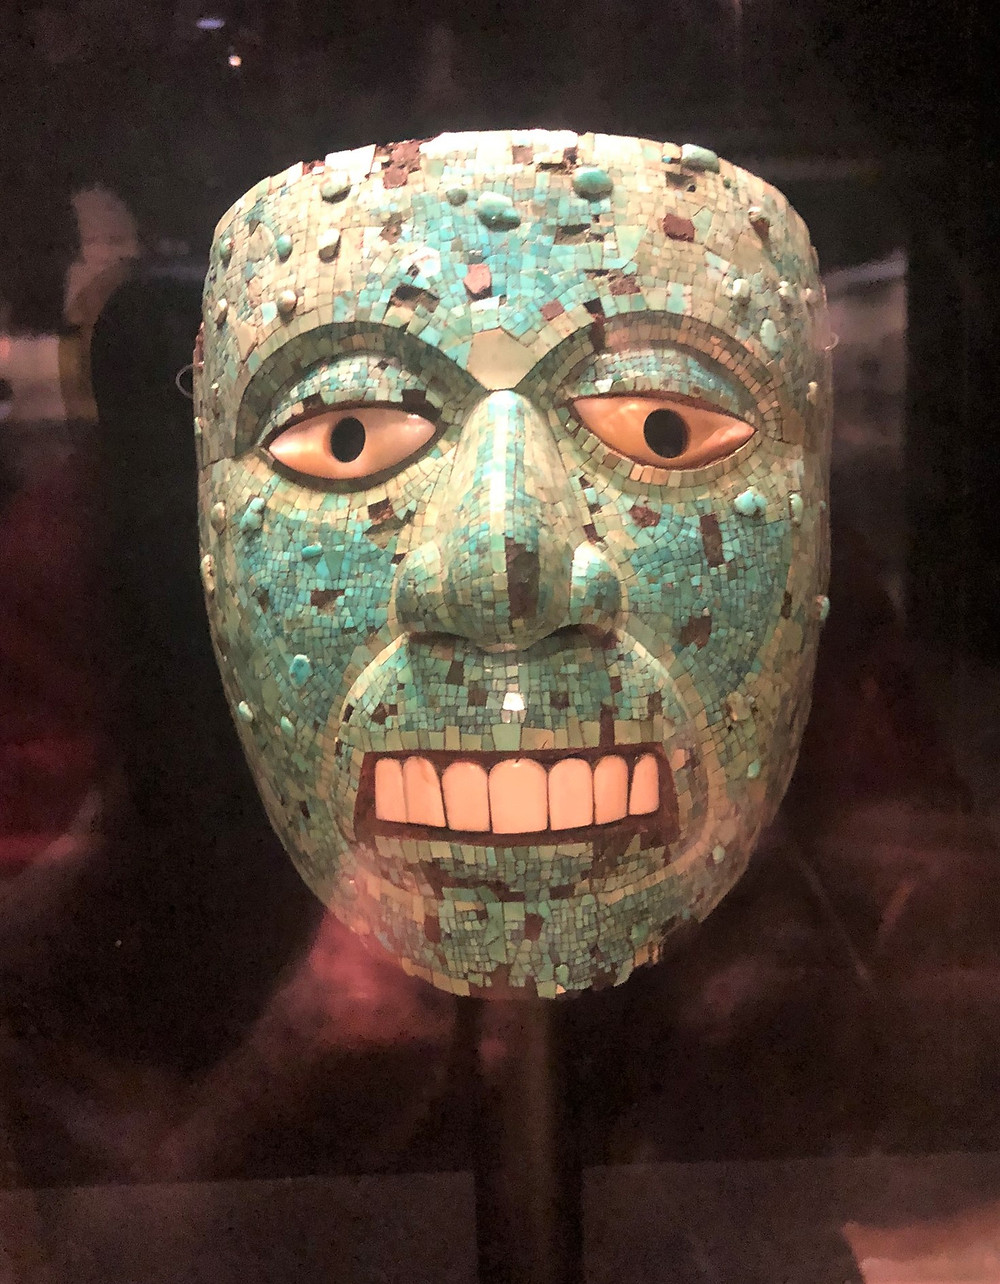 On display in The British Museum a turquoise Mosaic Mask, Mixtec-Aztec, Mexico, 1400-1500 AD